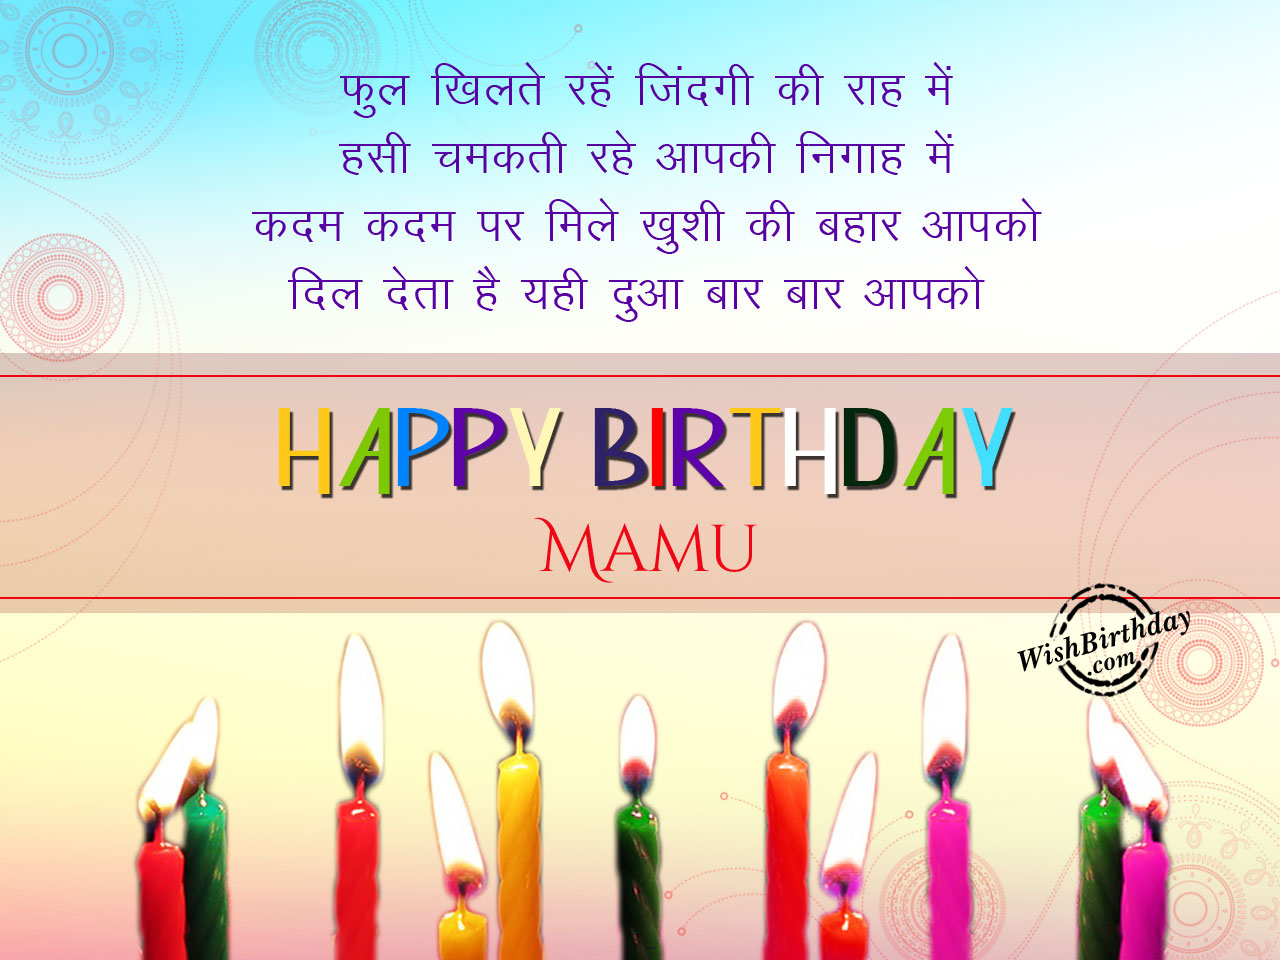 Birthday Wishes For Mama Ji - Birthday Images, Pictures